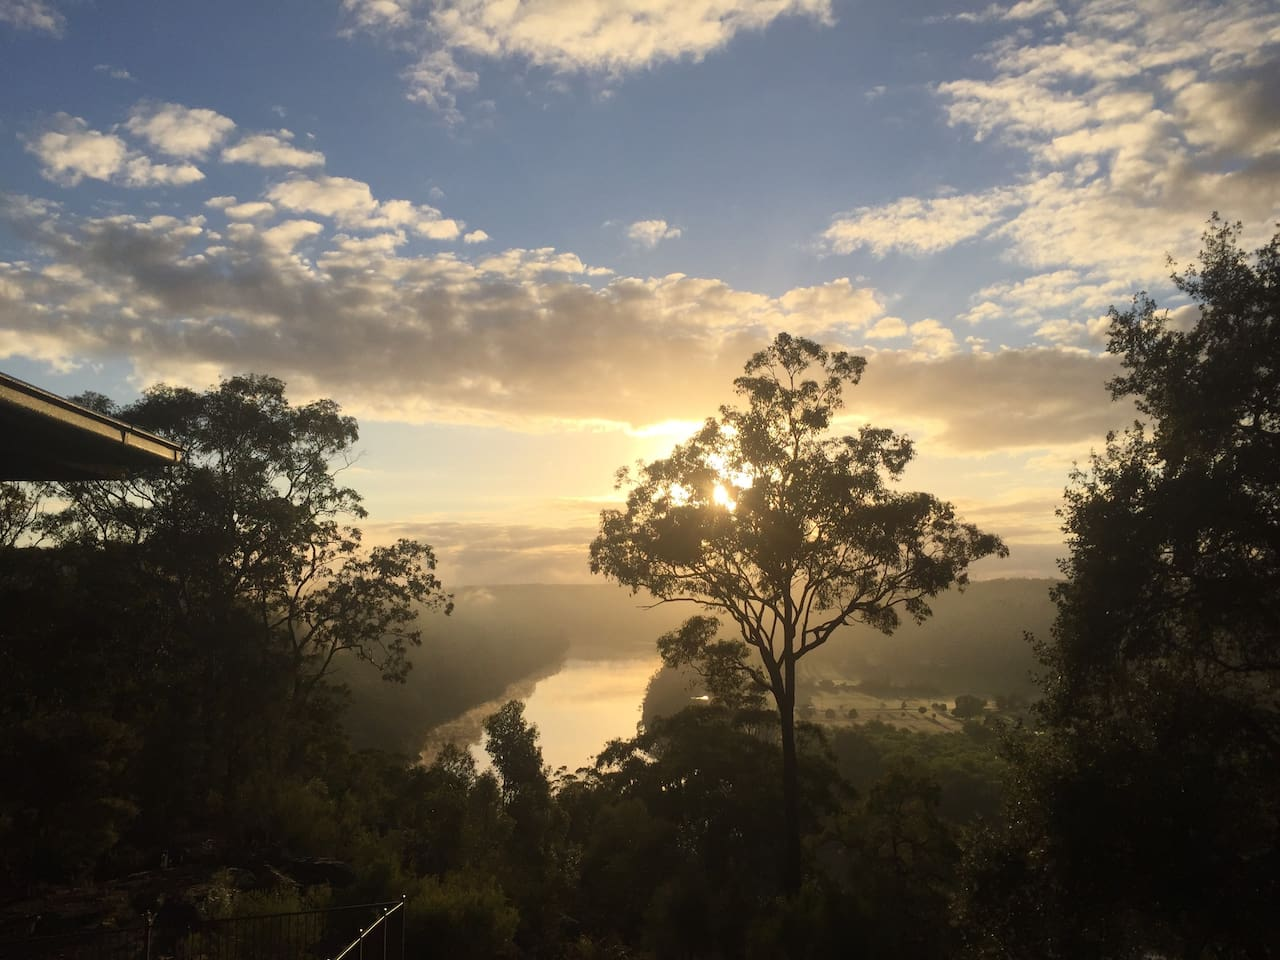 The 15 hectare property overlooks the mystical Hawkesbury River.